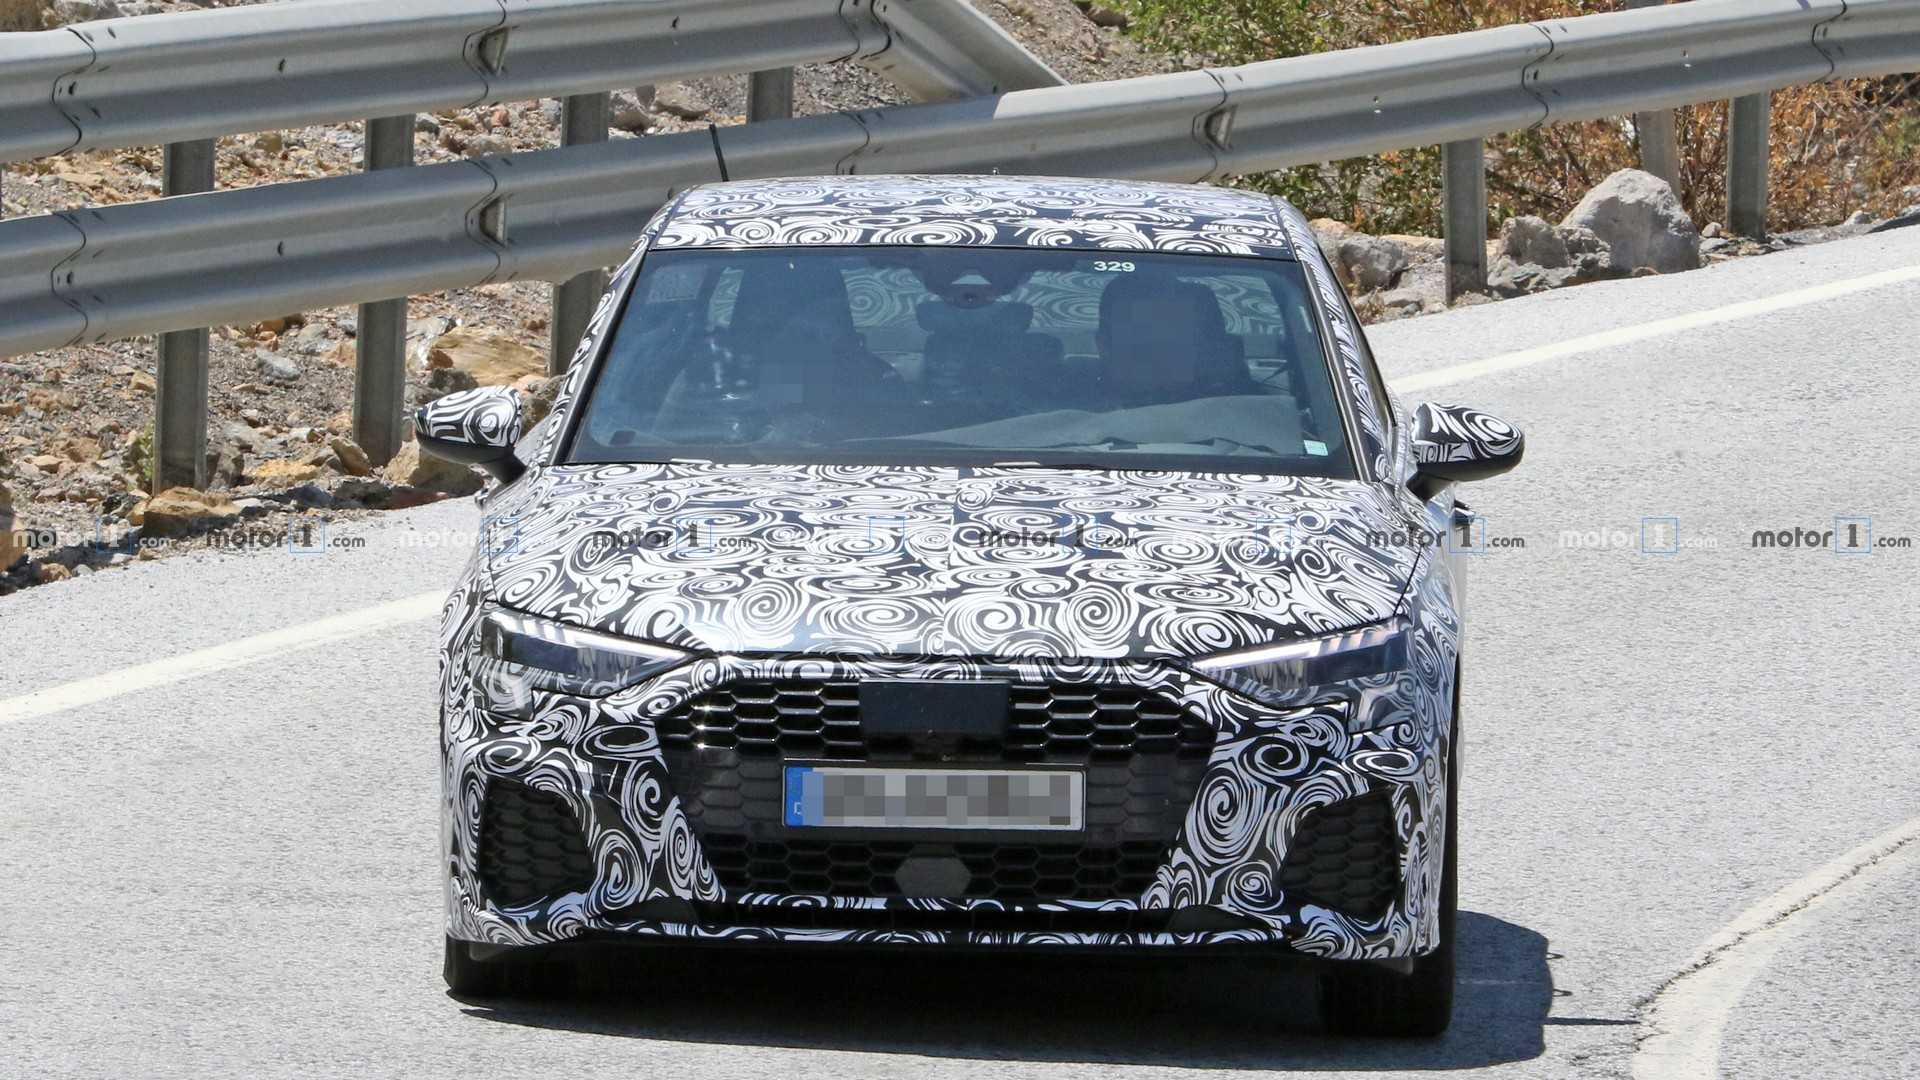 14 All New Audi A3 S Line 2020 Picture by Audi A3 S Line 2020